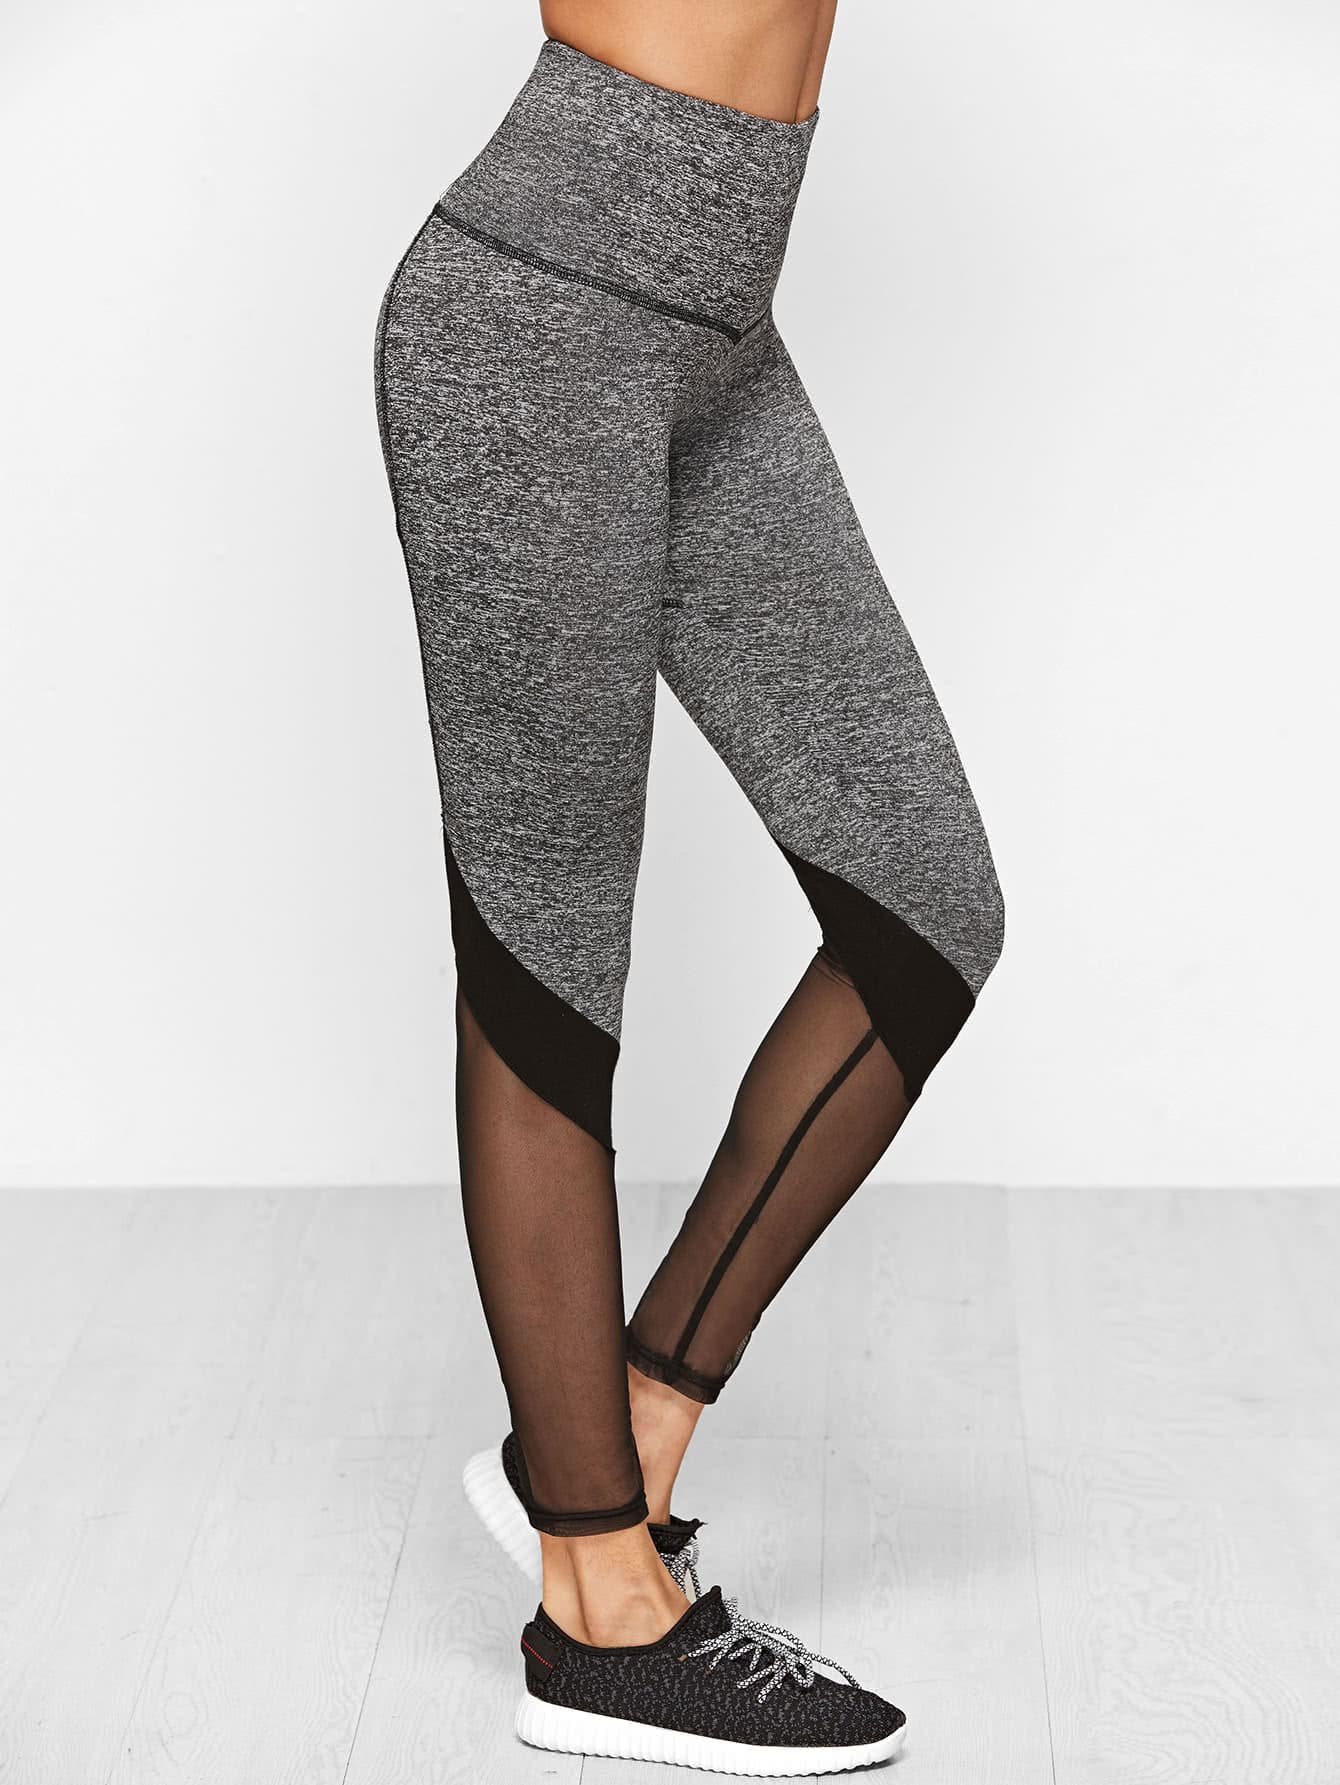 leggings161206702_2